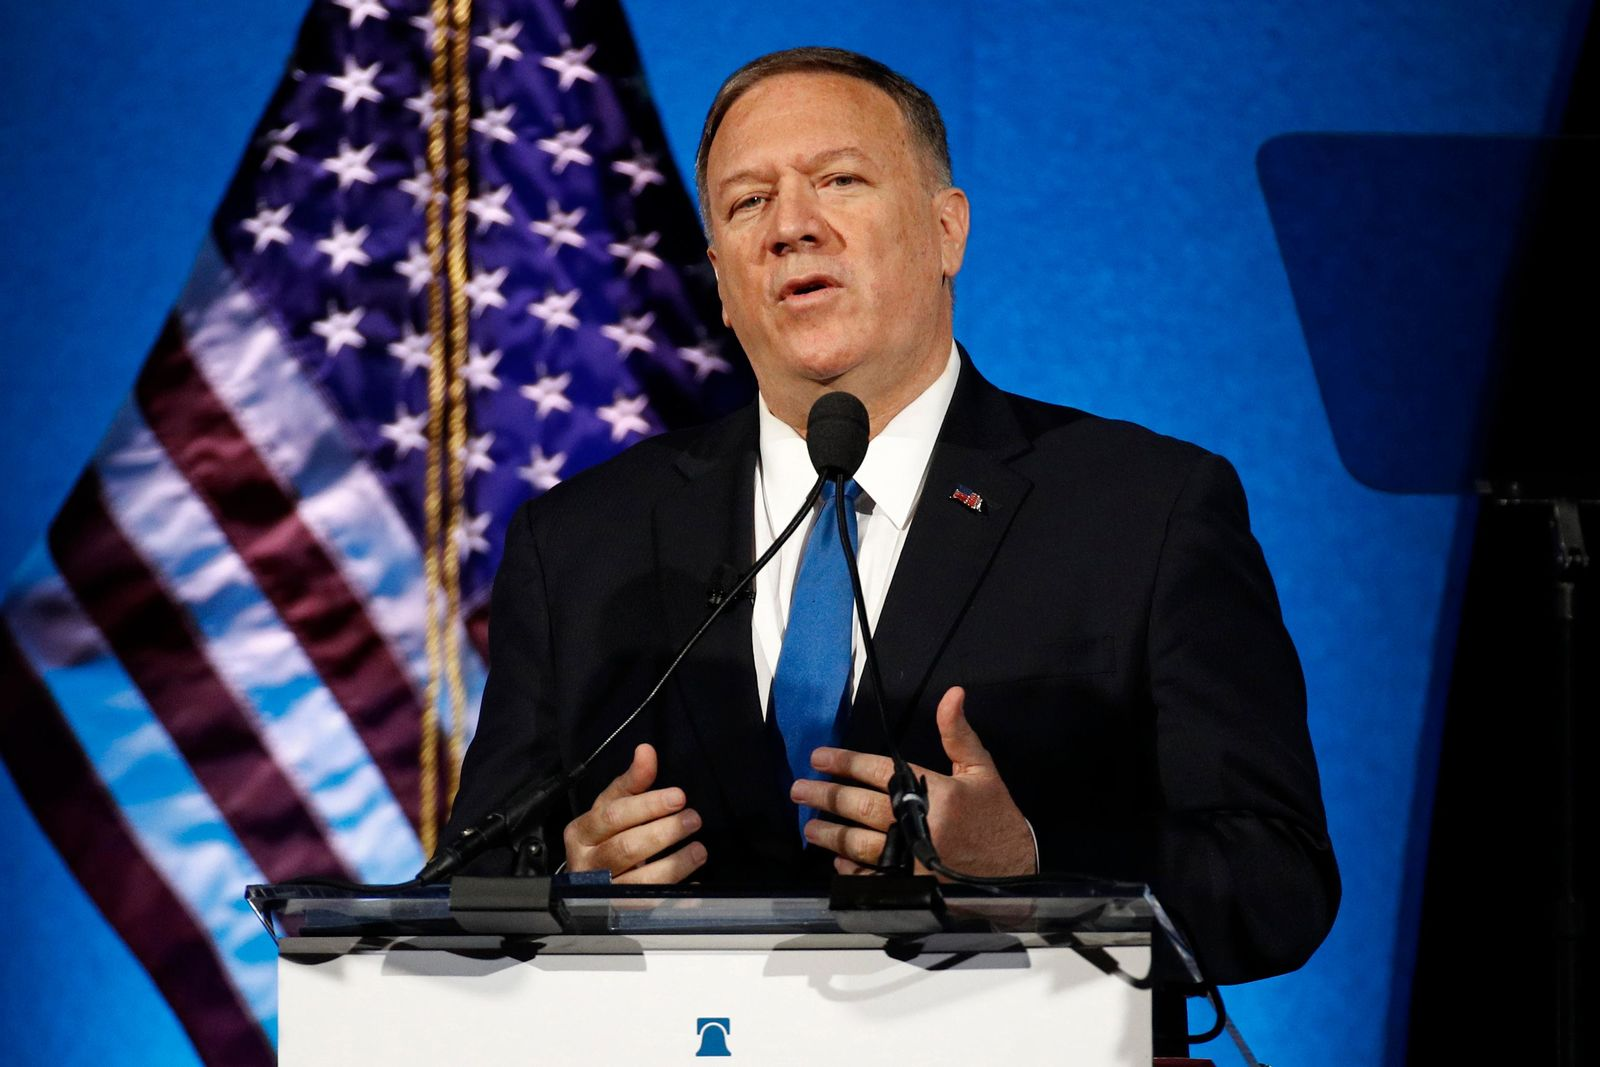 FILE - In this Oct. 22, 2019, file photo, Secretary of State Mike Pompeo speaks at the Heritage Foundation's annual President's Club Meeting in Washington. (AP Photo/Patrick Semansky, File)